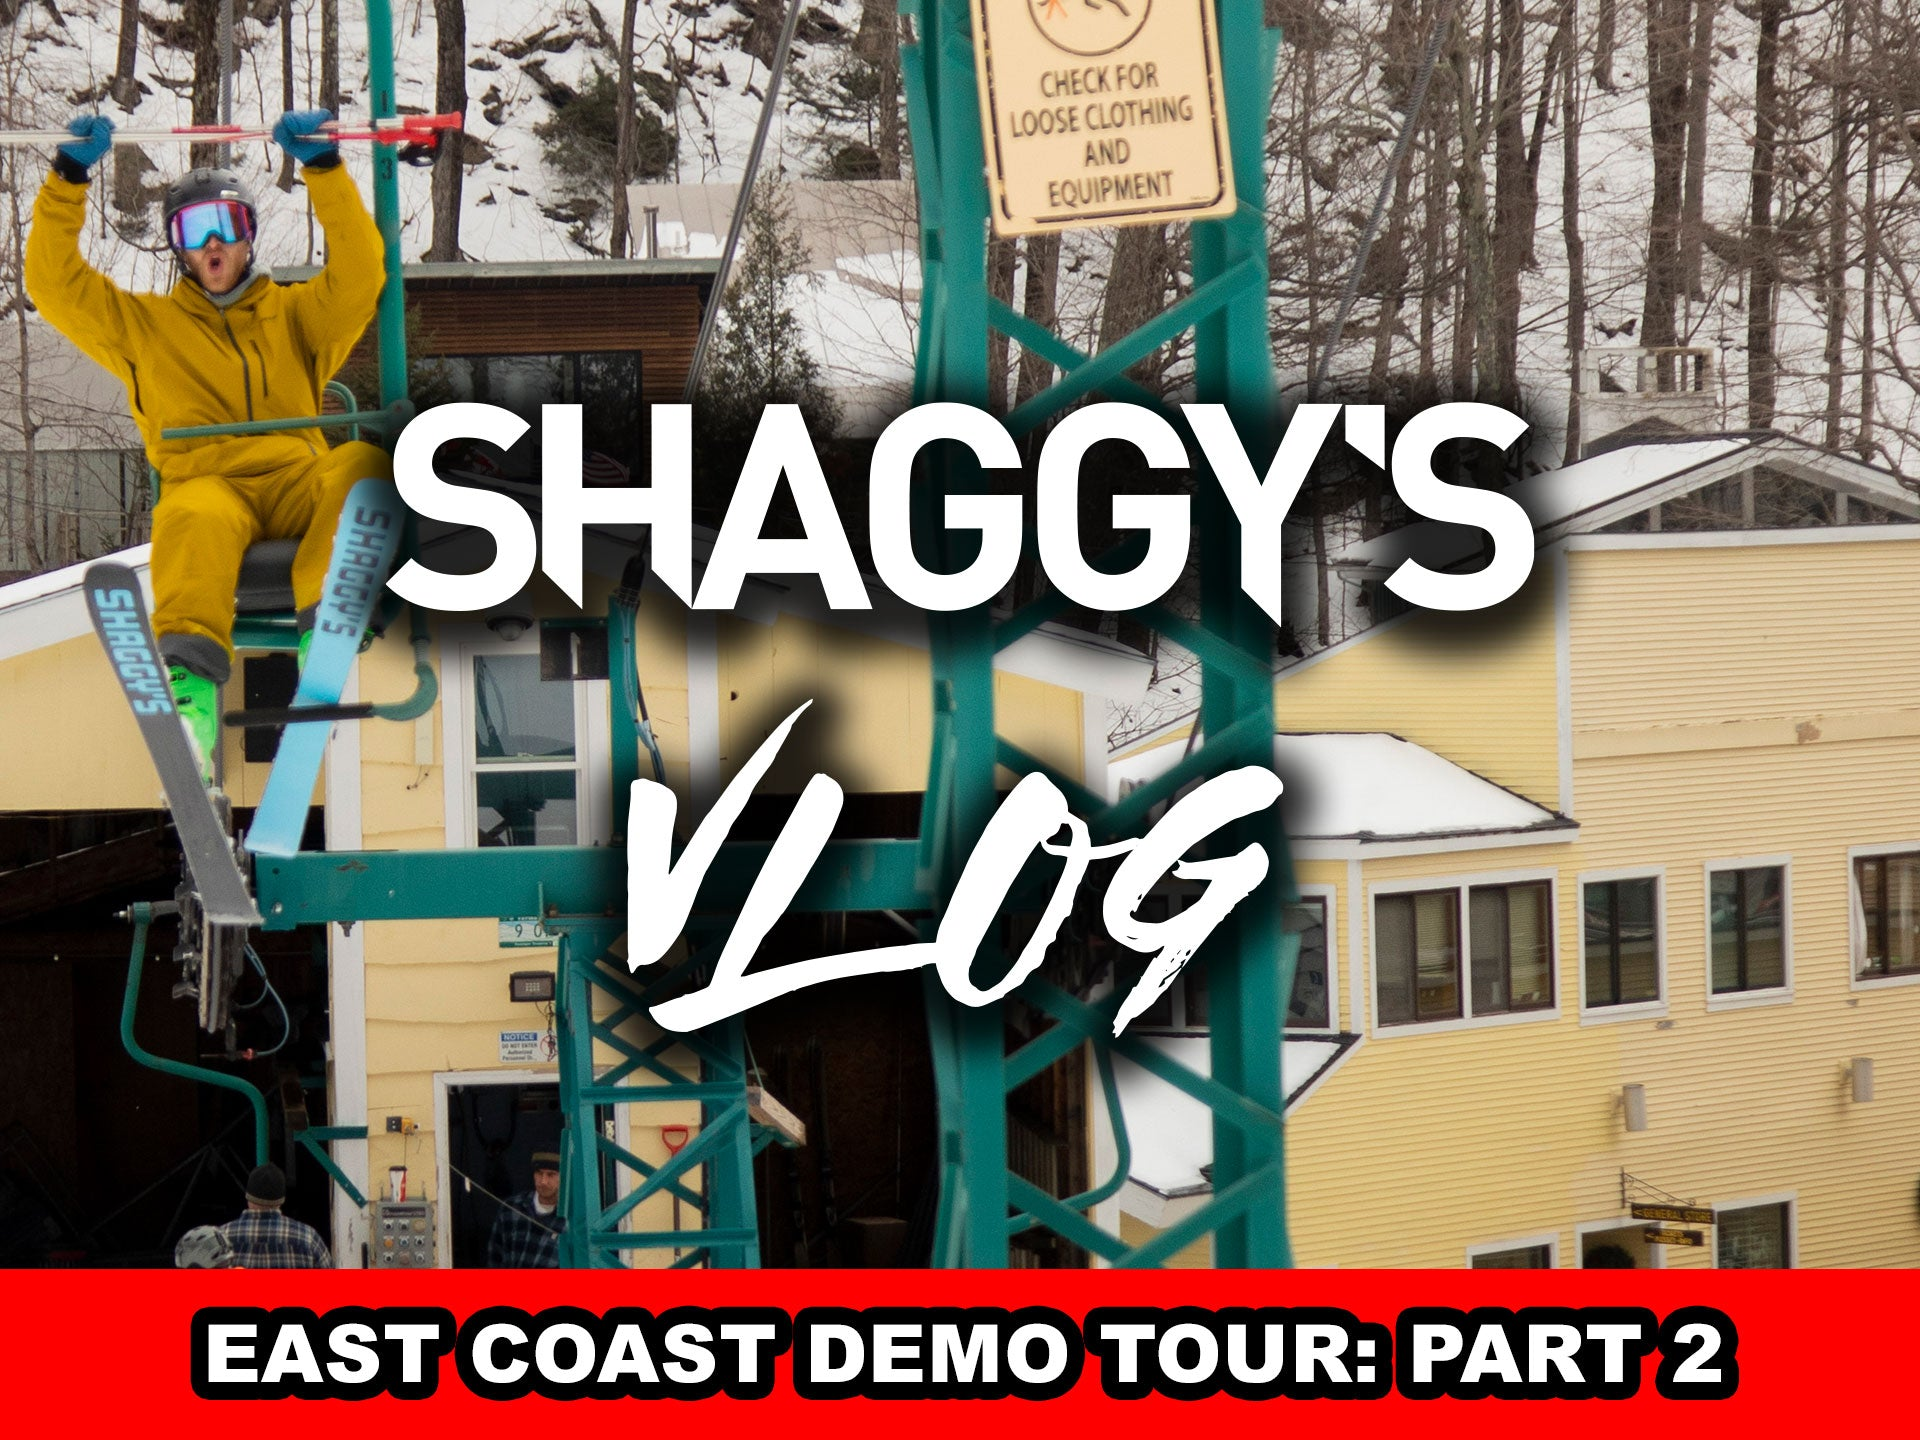 VLOG 013 - EAST COAST DEMO TOUR: PART 2